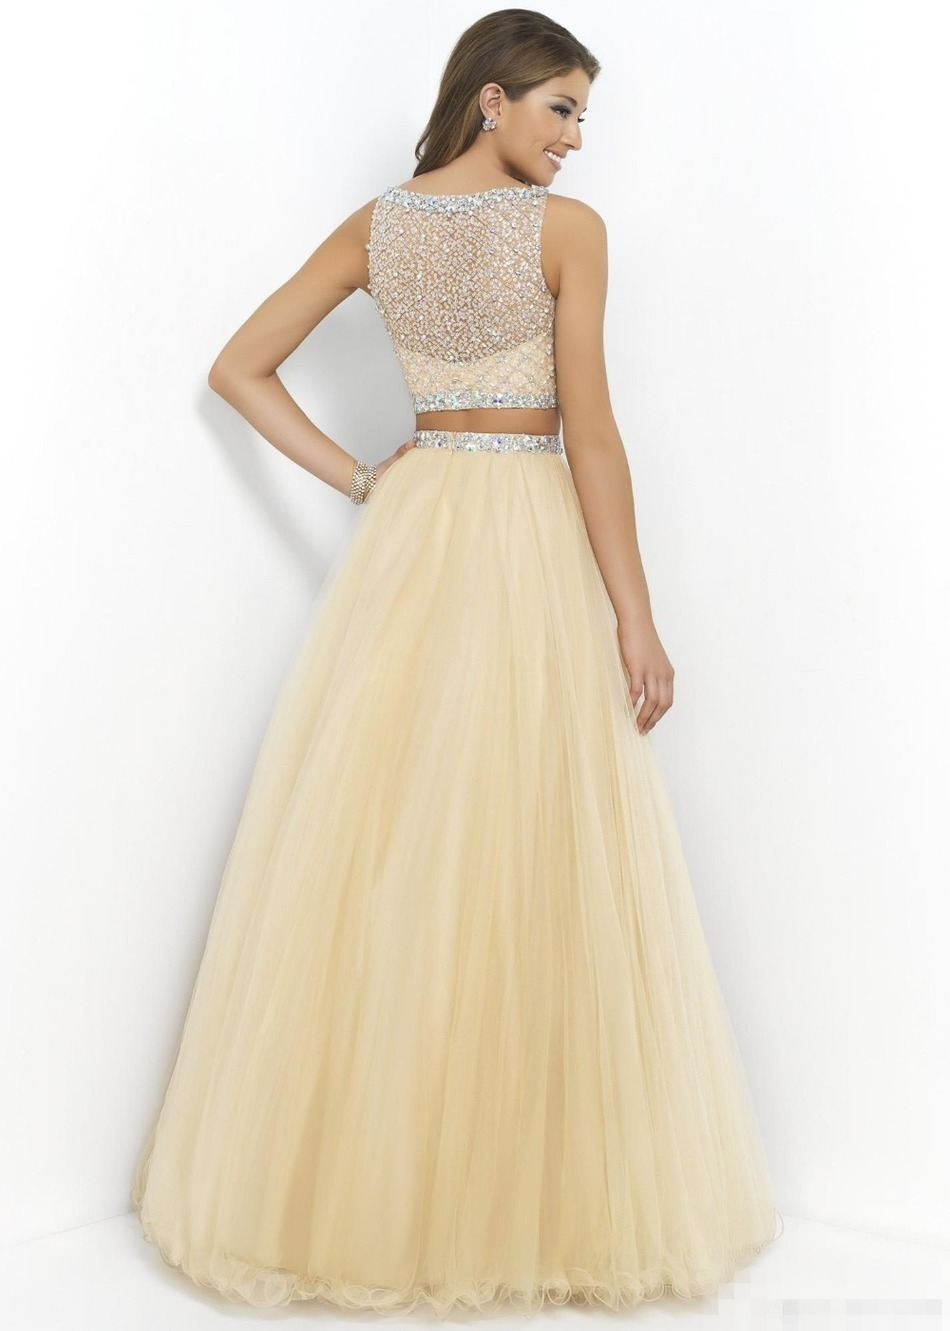 Top places to buy prom dresses